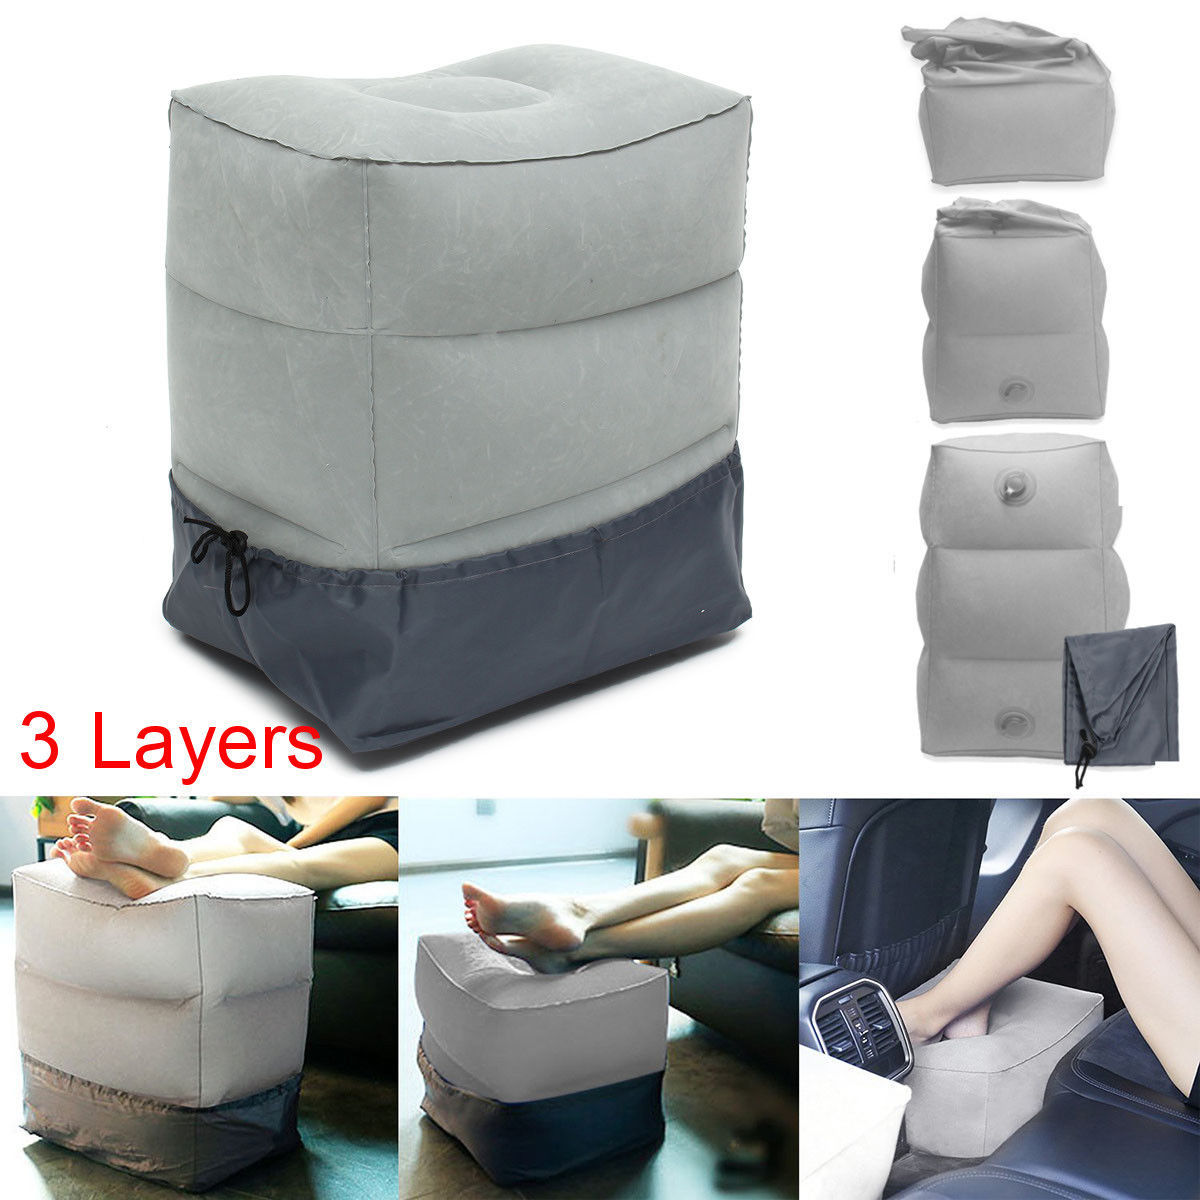 15 Newest Hot Useful Inflatable Portable Travel Footrest Pillow Plane Train Kids Bed Foot Rest Pad